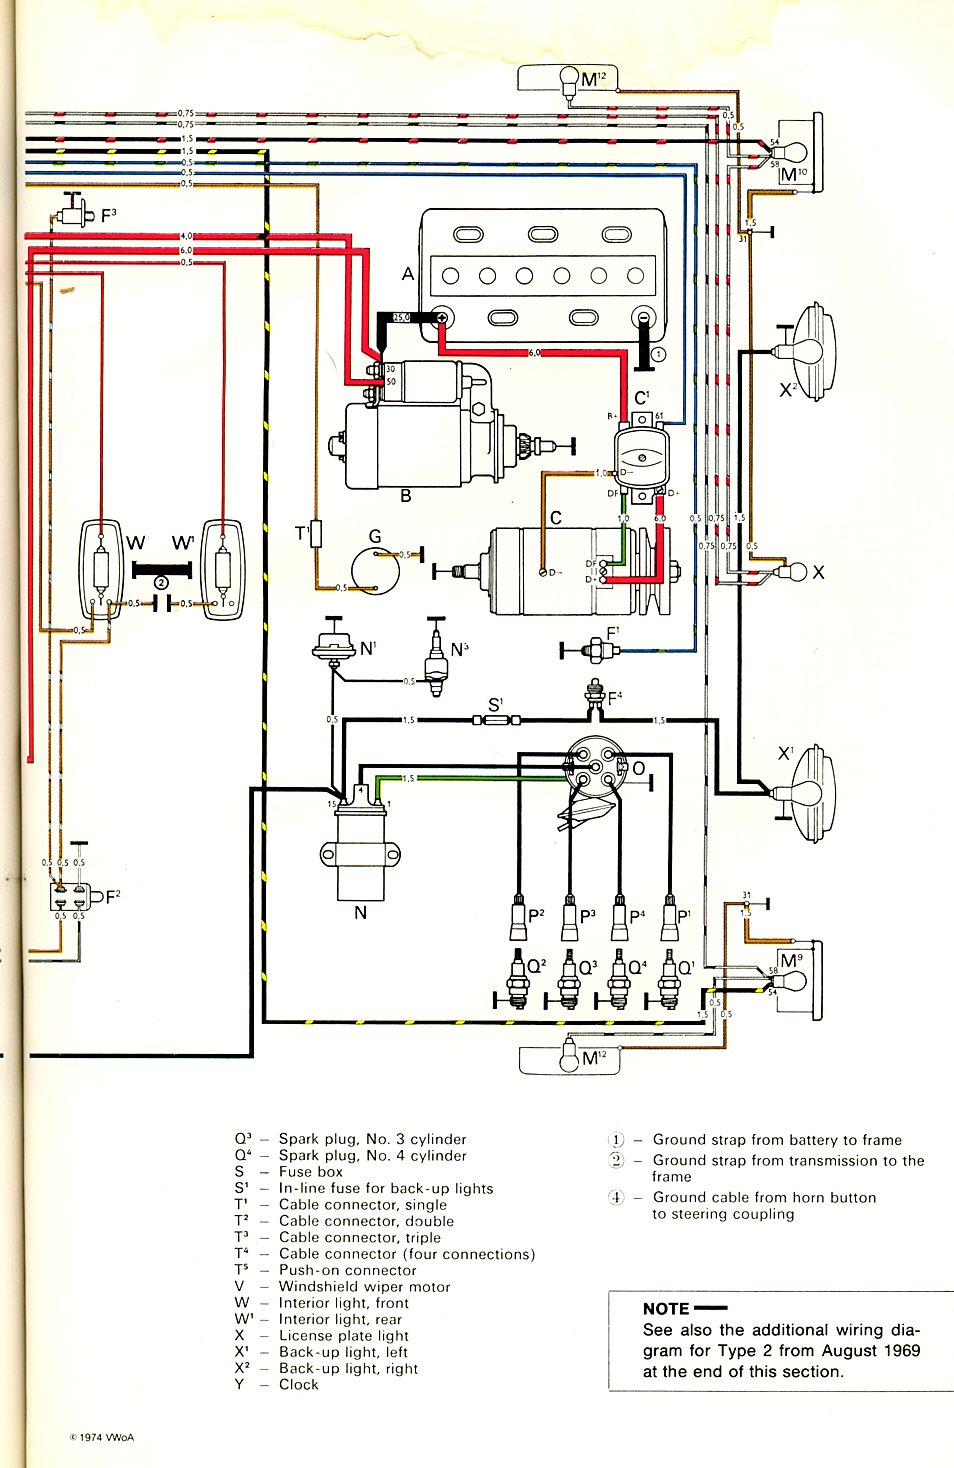 baybus_70b thesamba com type 2 wiring diagrams 1974 vw alternator wiring diagram at readyjetset.co